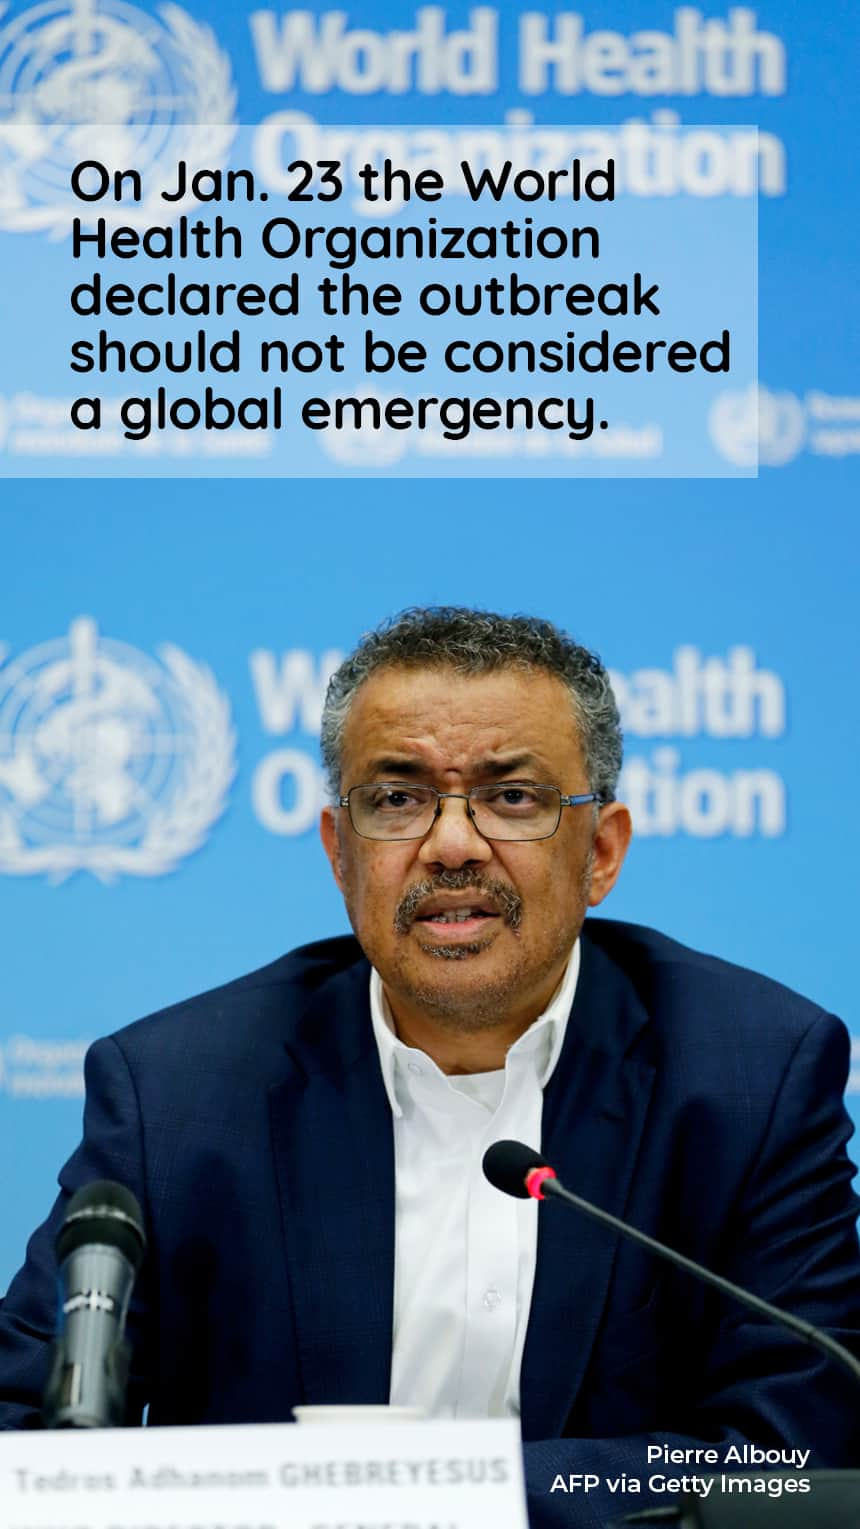 TEXT: On Jan. 23 the World Health Organization declared the outbreak should not be considered a global emergency.  IMAGE: Health official CREDIT: Pierre Albouy AFP via Getty Images